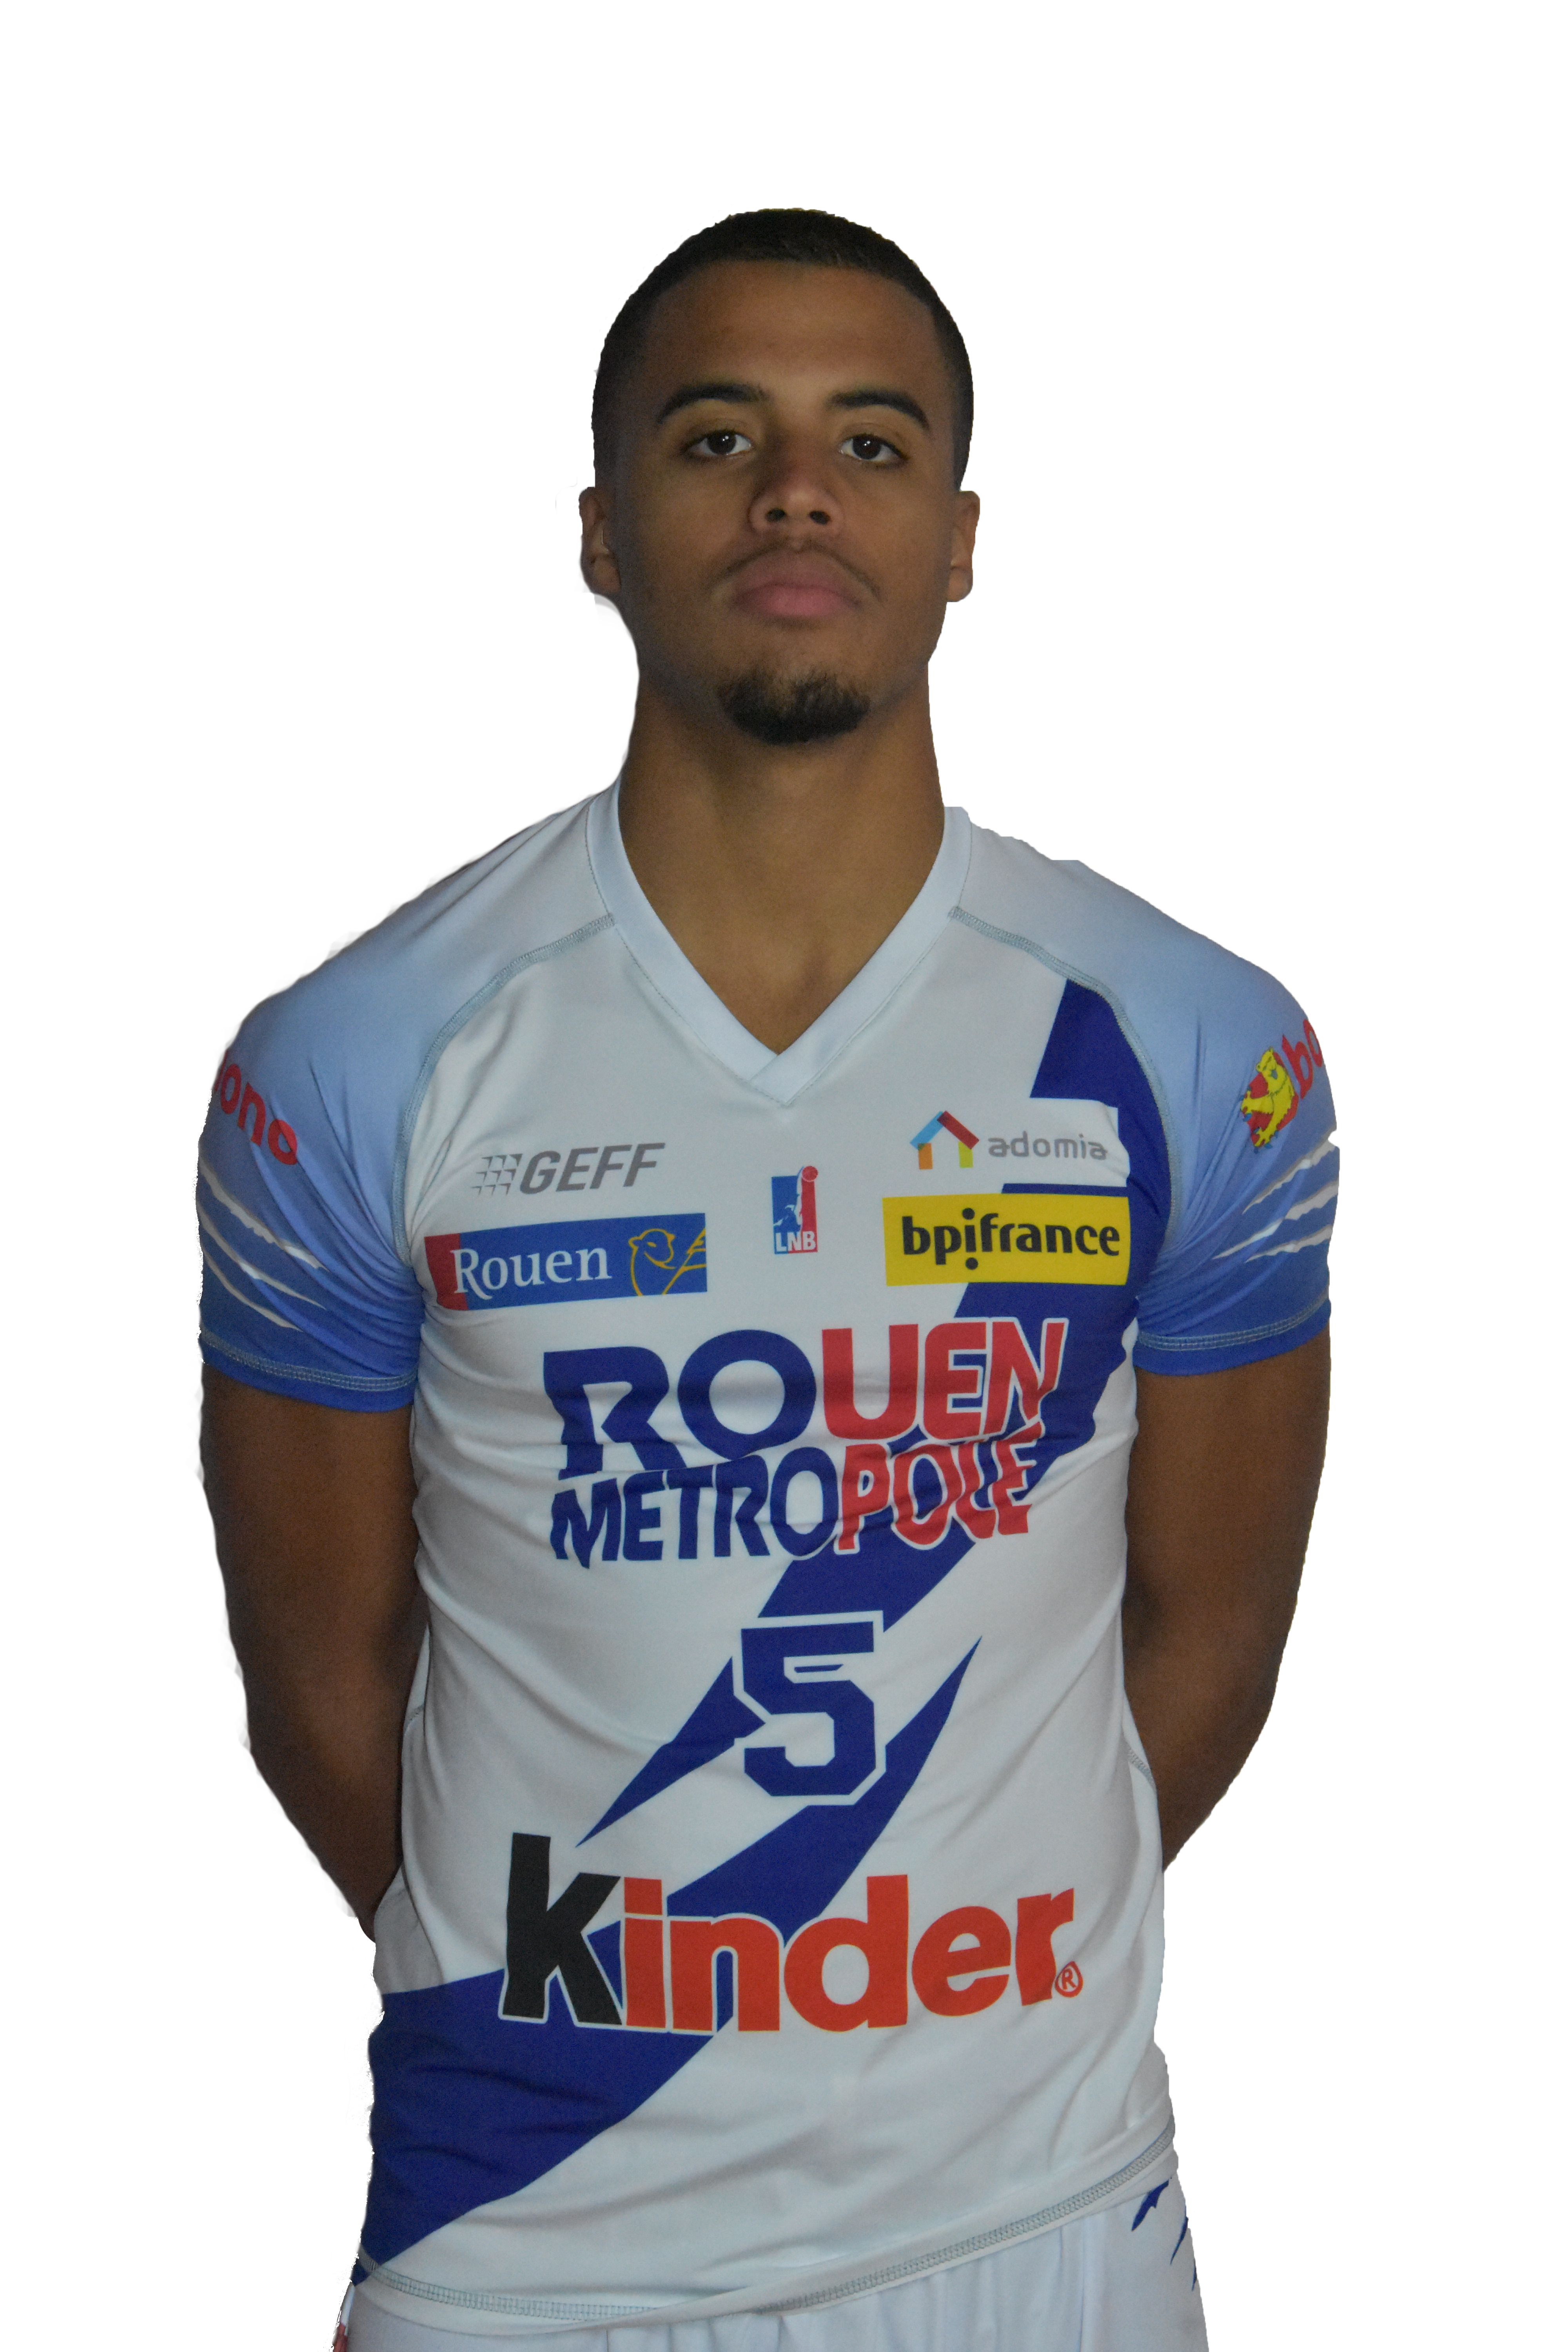 https://rouenmetrobasket.com/wp-content/uploads/2019/09/Buste-Alexandre-Dogbe-1.png